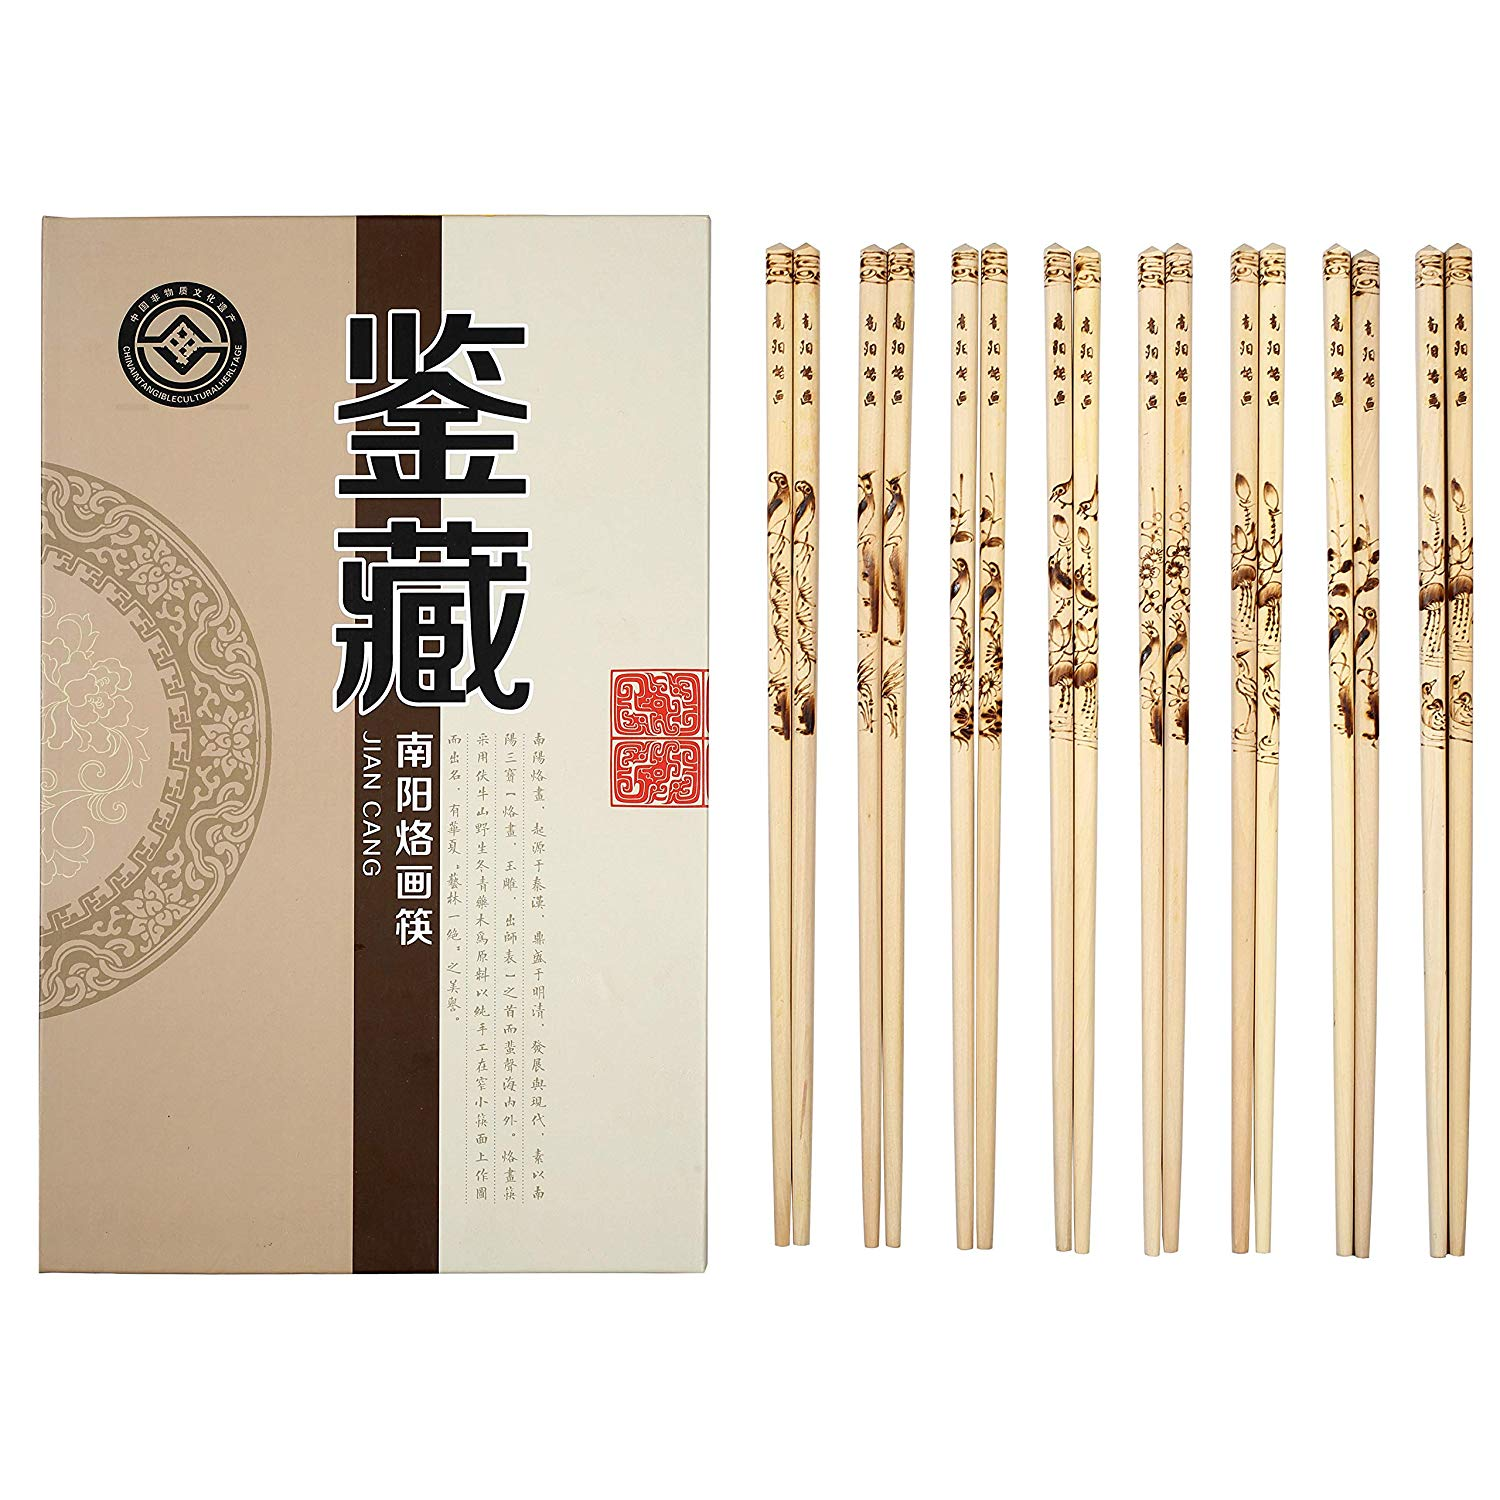 Onecrystal Chopsticks Handmade Engraved Wood Chopstick Chinese Style Exquisite Traditional Decorated Gift Set, Reusable Washable Natural Wooden Pyrograph Chopsticks - 8 Pairs (Various Pattern)